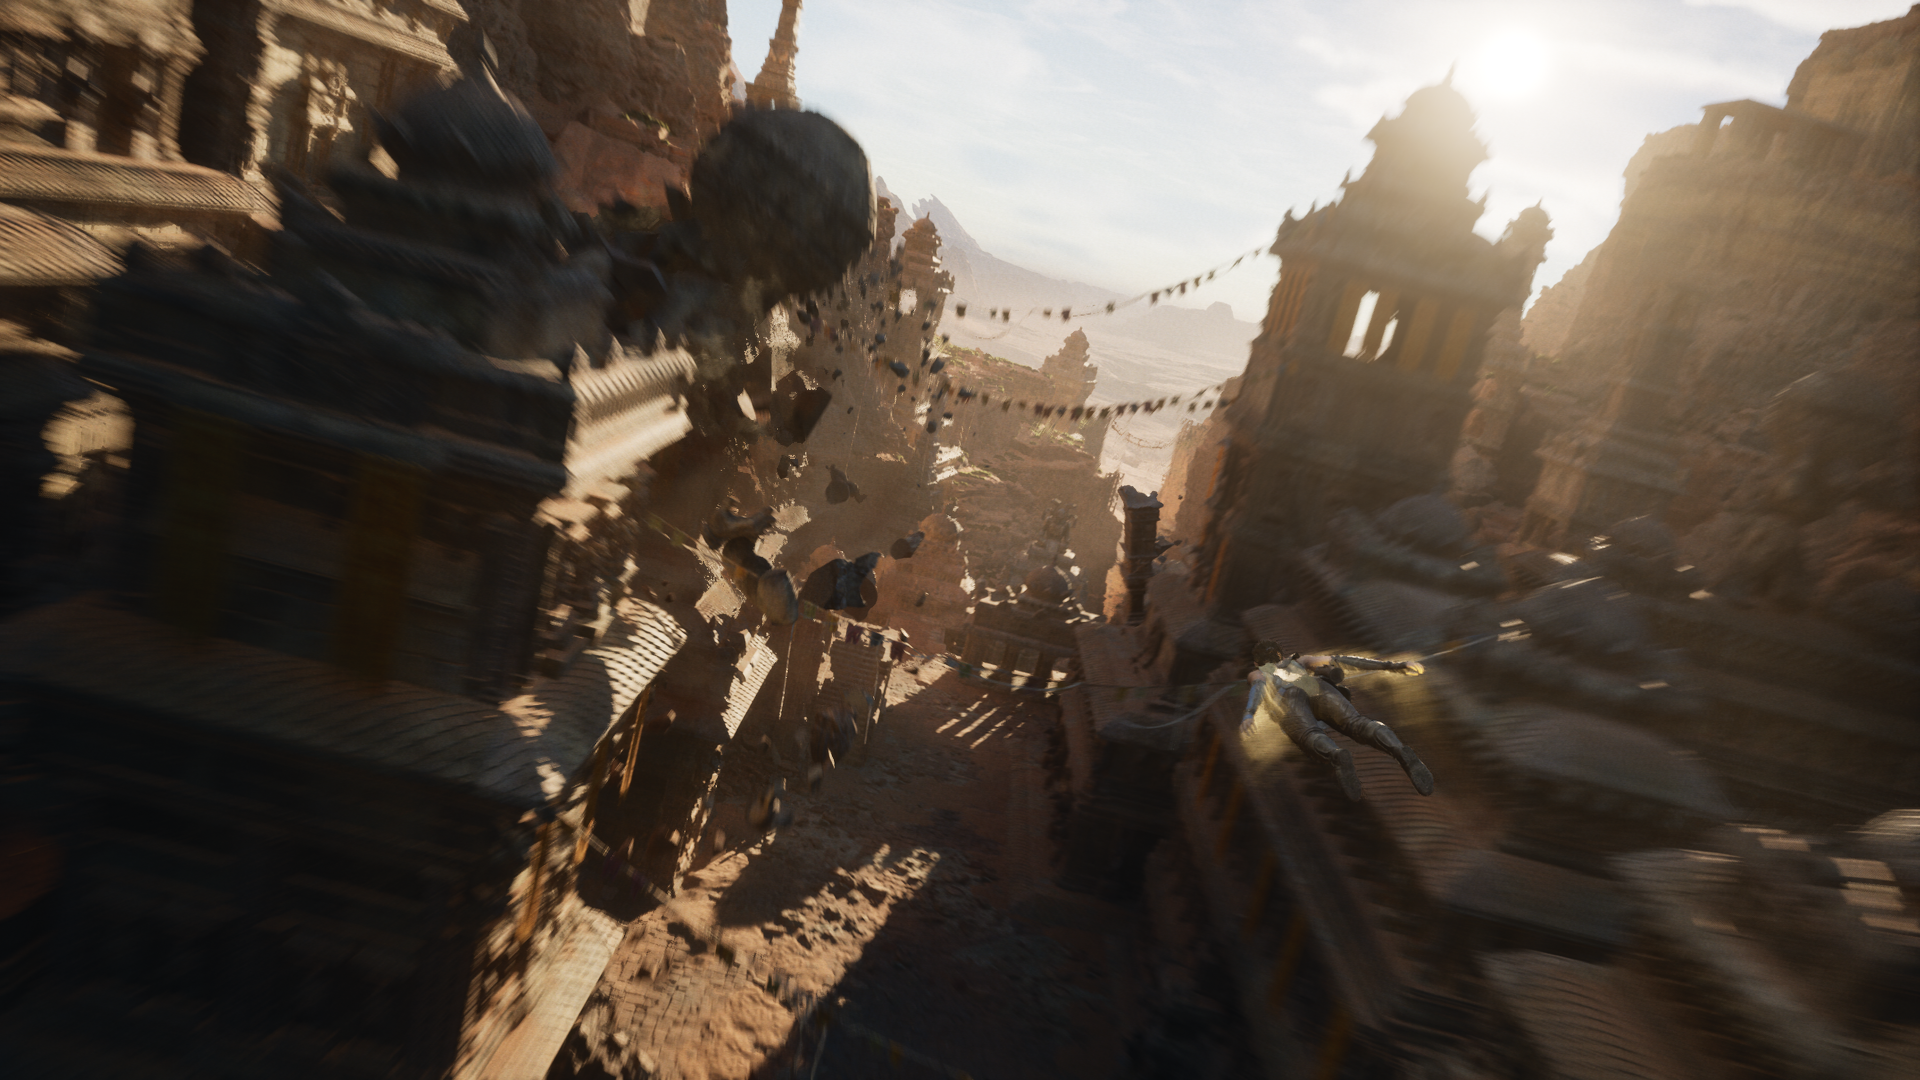 Epic Games has announced a new engine - Unreal Engine 5 8